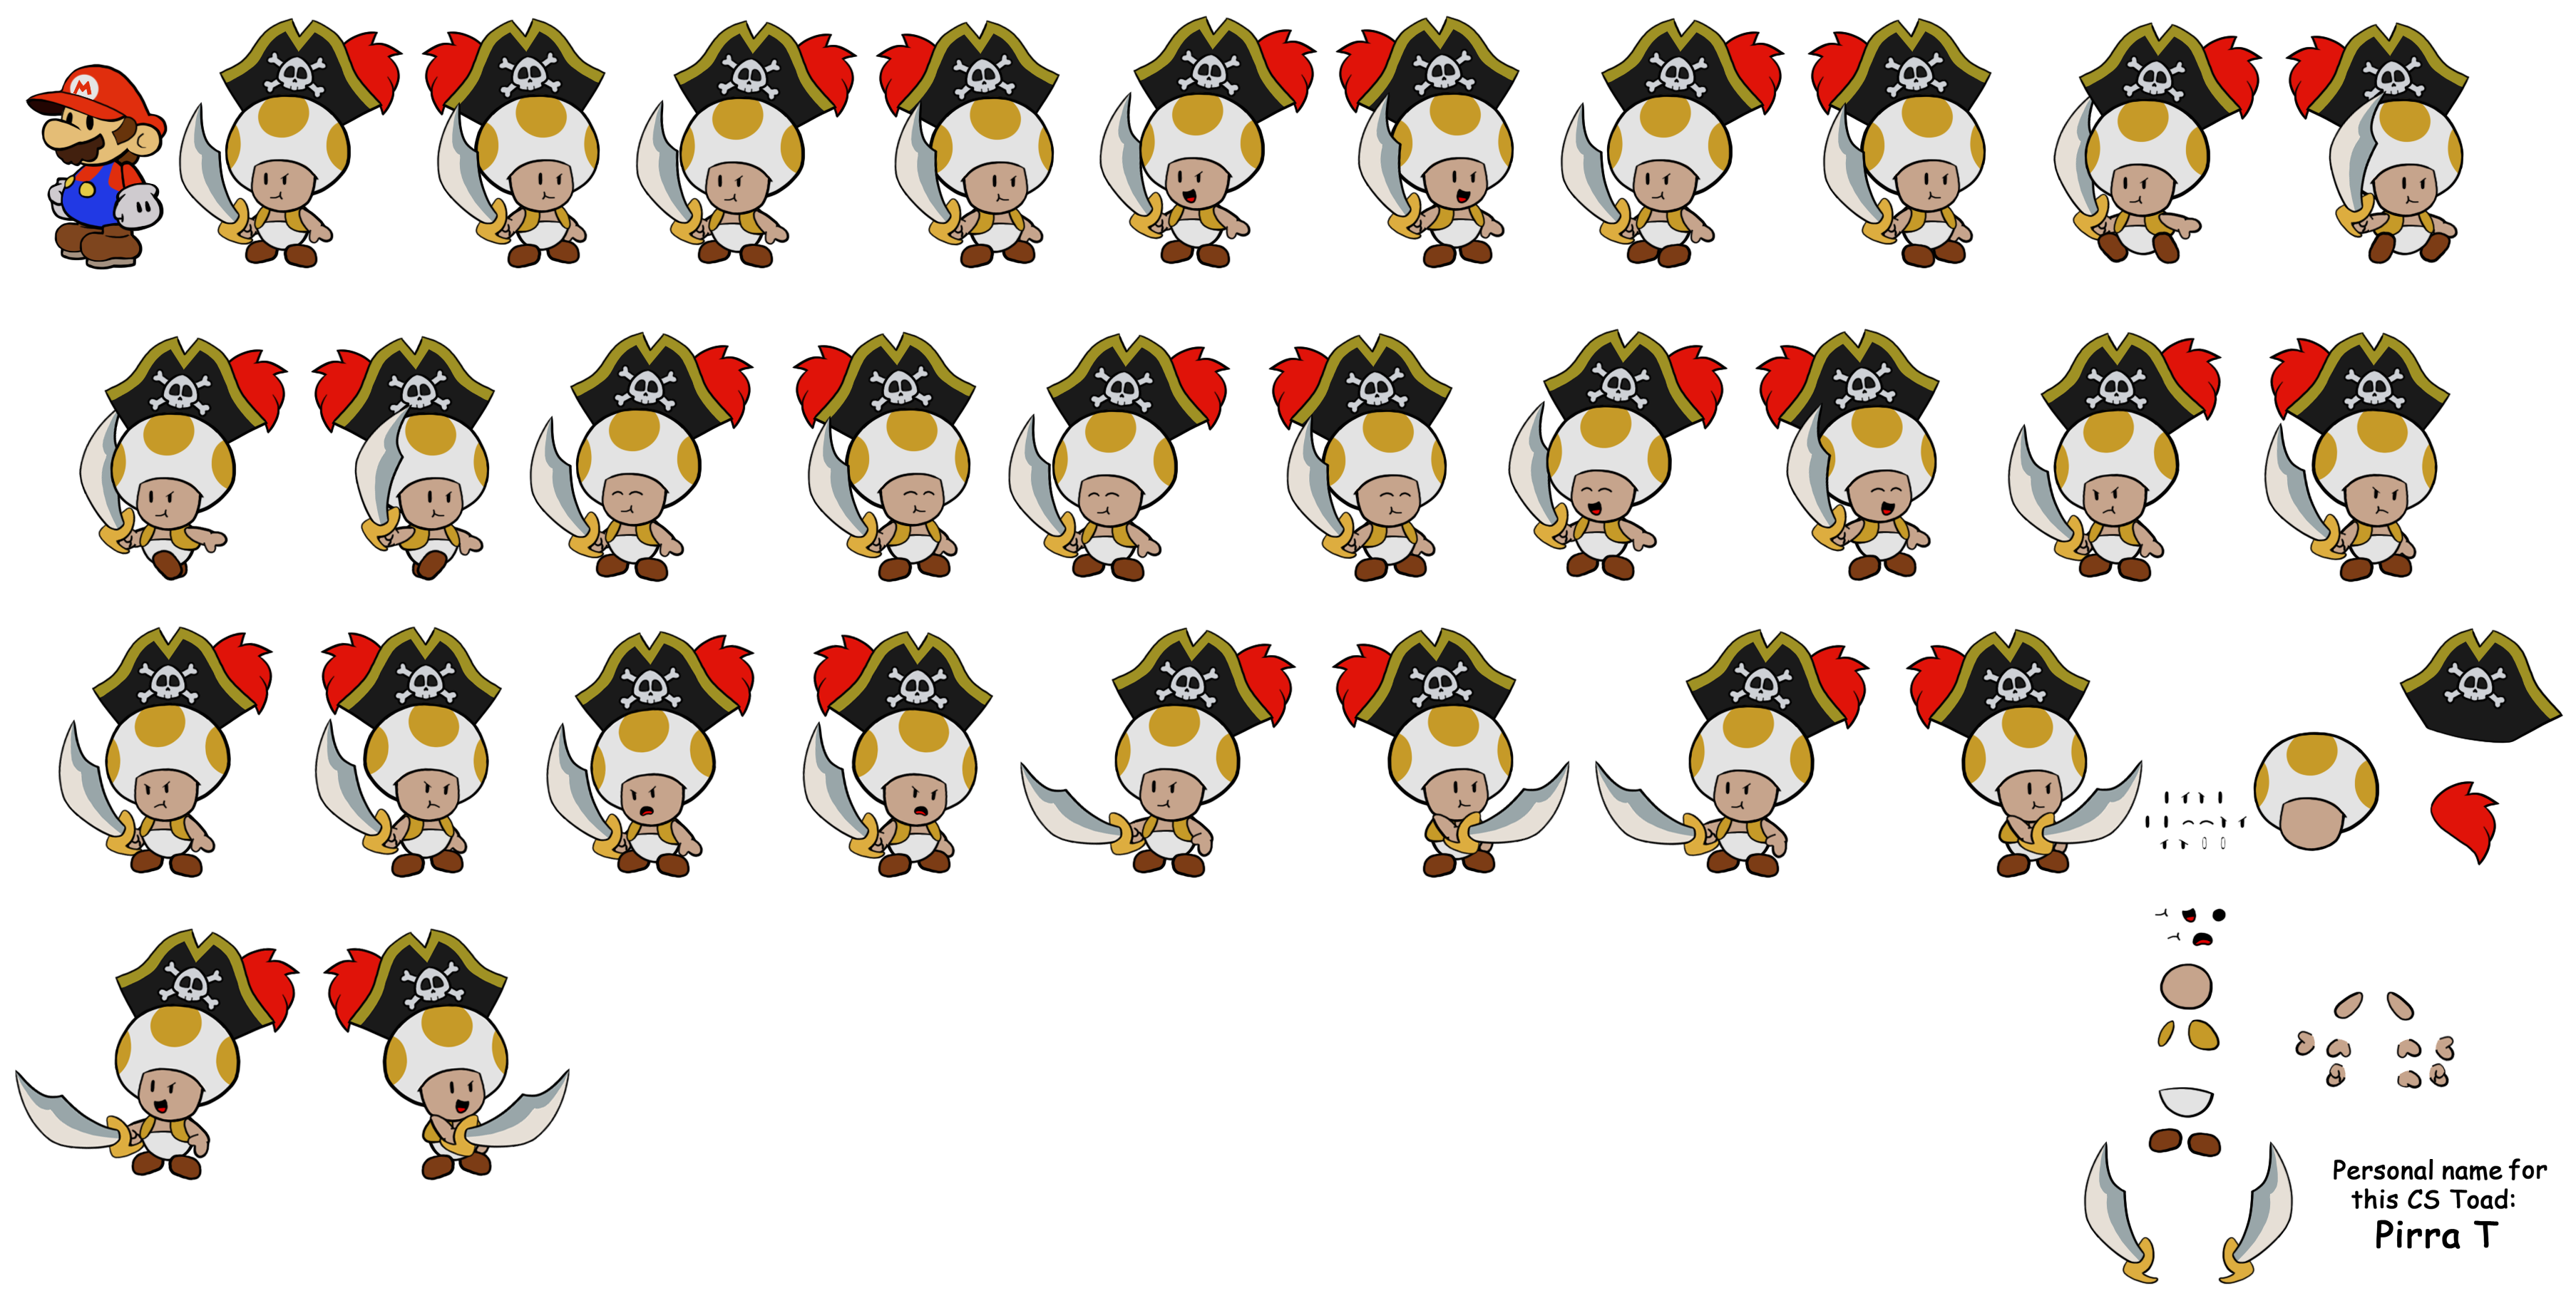 Legendary Captain (Paper Mario Style)